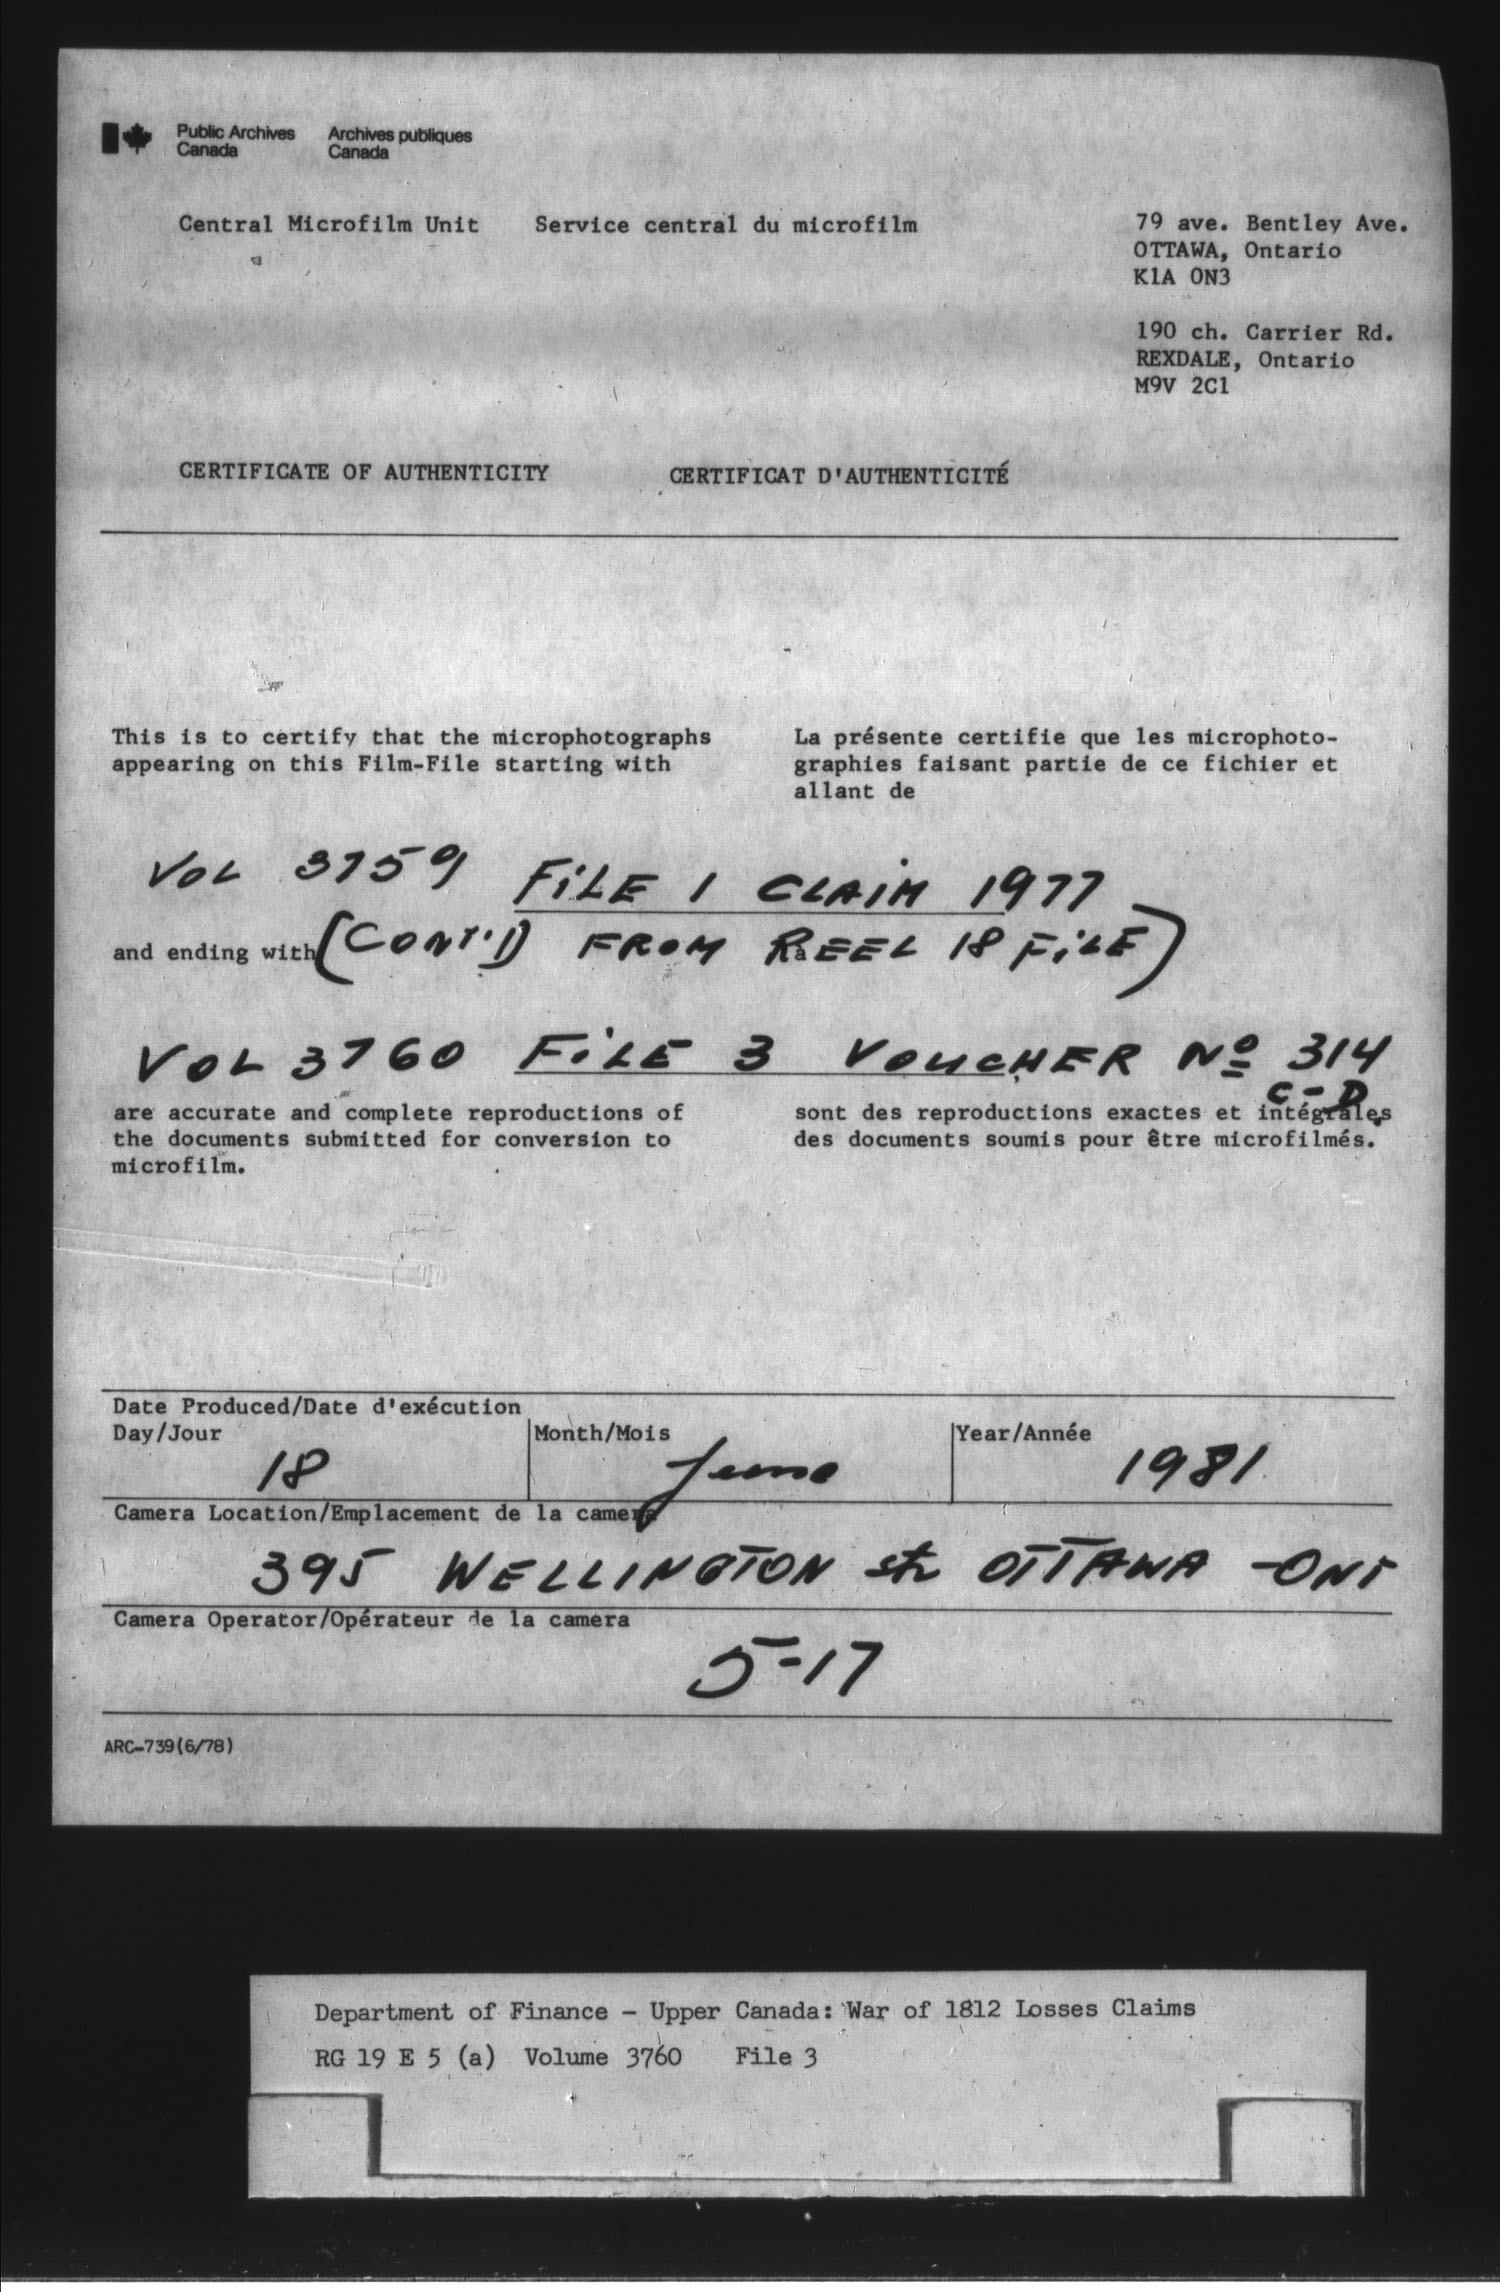 Title: War of 1812: Board of Claims for Losses, 1813-1848, RG 19 E5A - Mikan Number: 139215 - Microform: t-1140